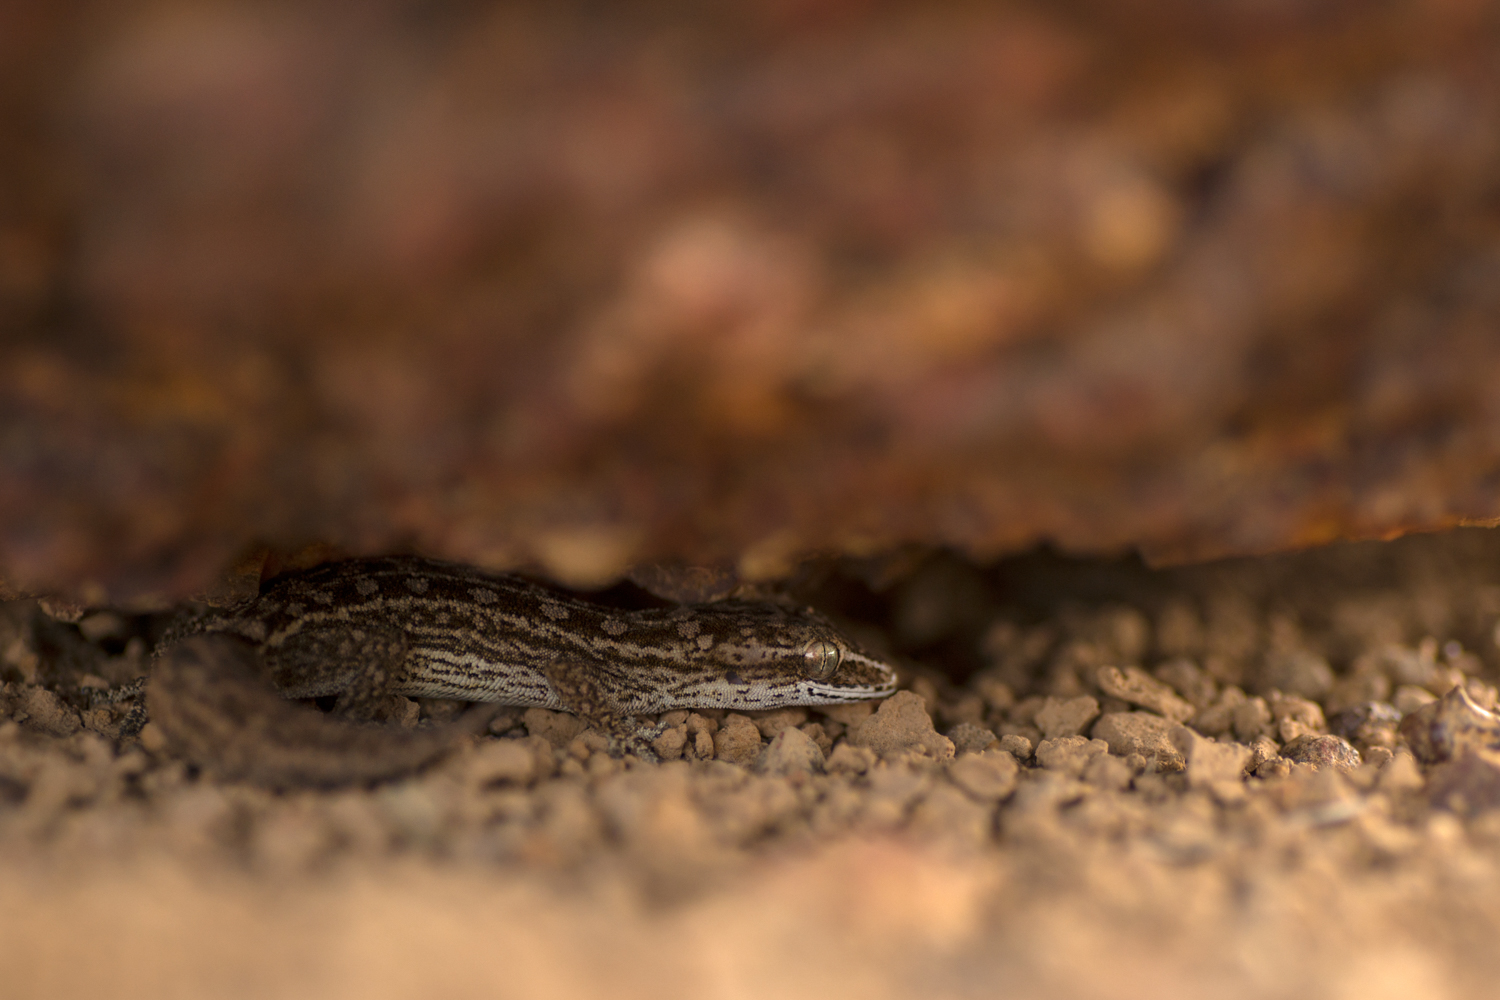 The heat lays the plateau bare, but beneath the rocks reptiles thrive. A  Hemidactylus satarensis  gecko, waiting under the rocks biding its time till the sun goes down.